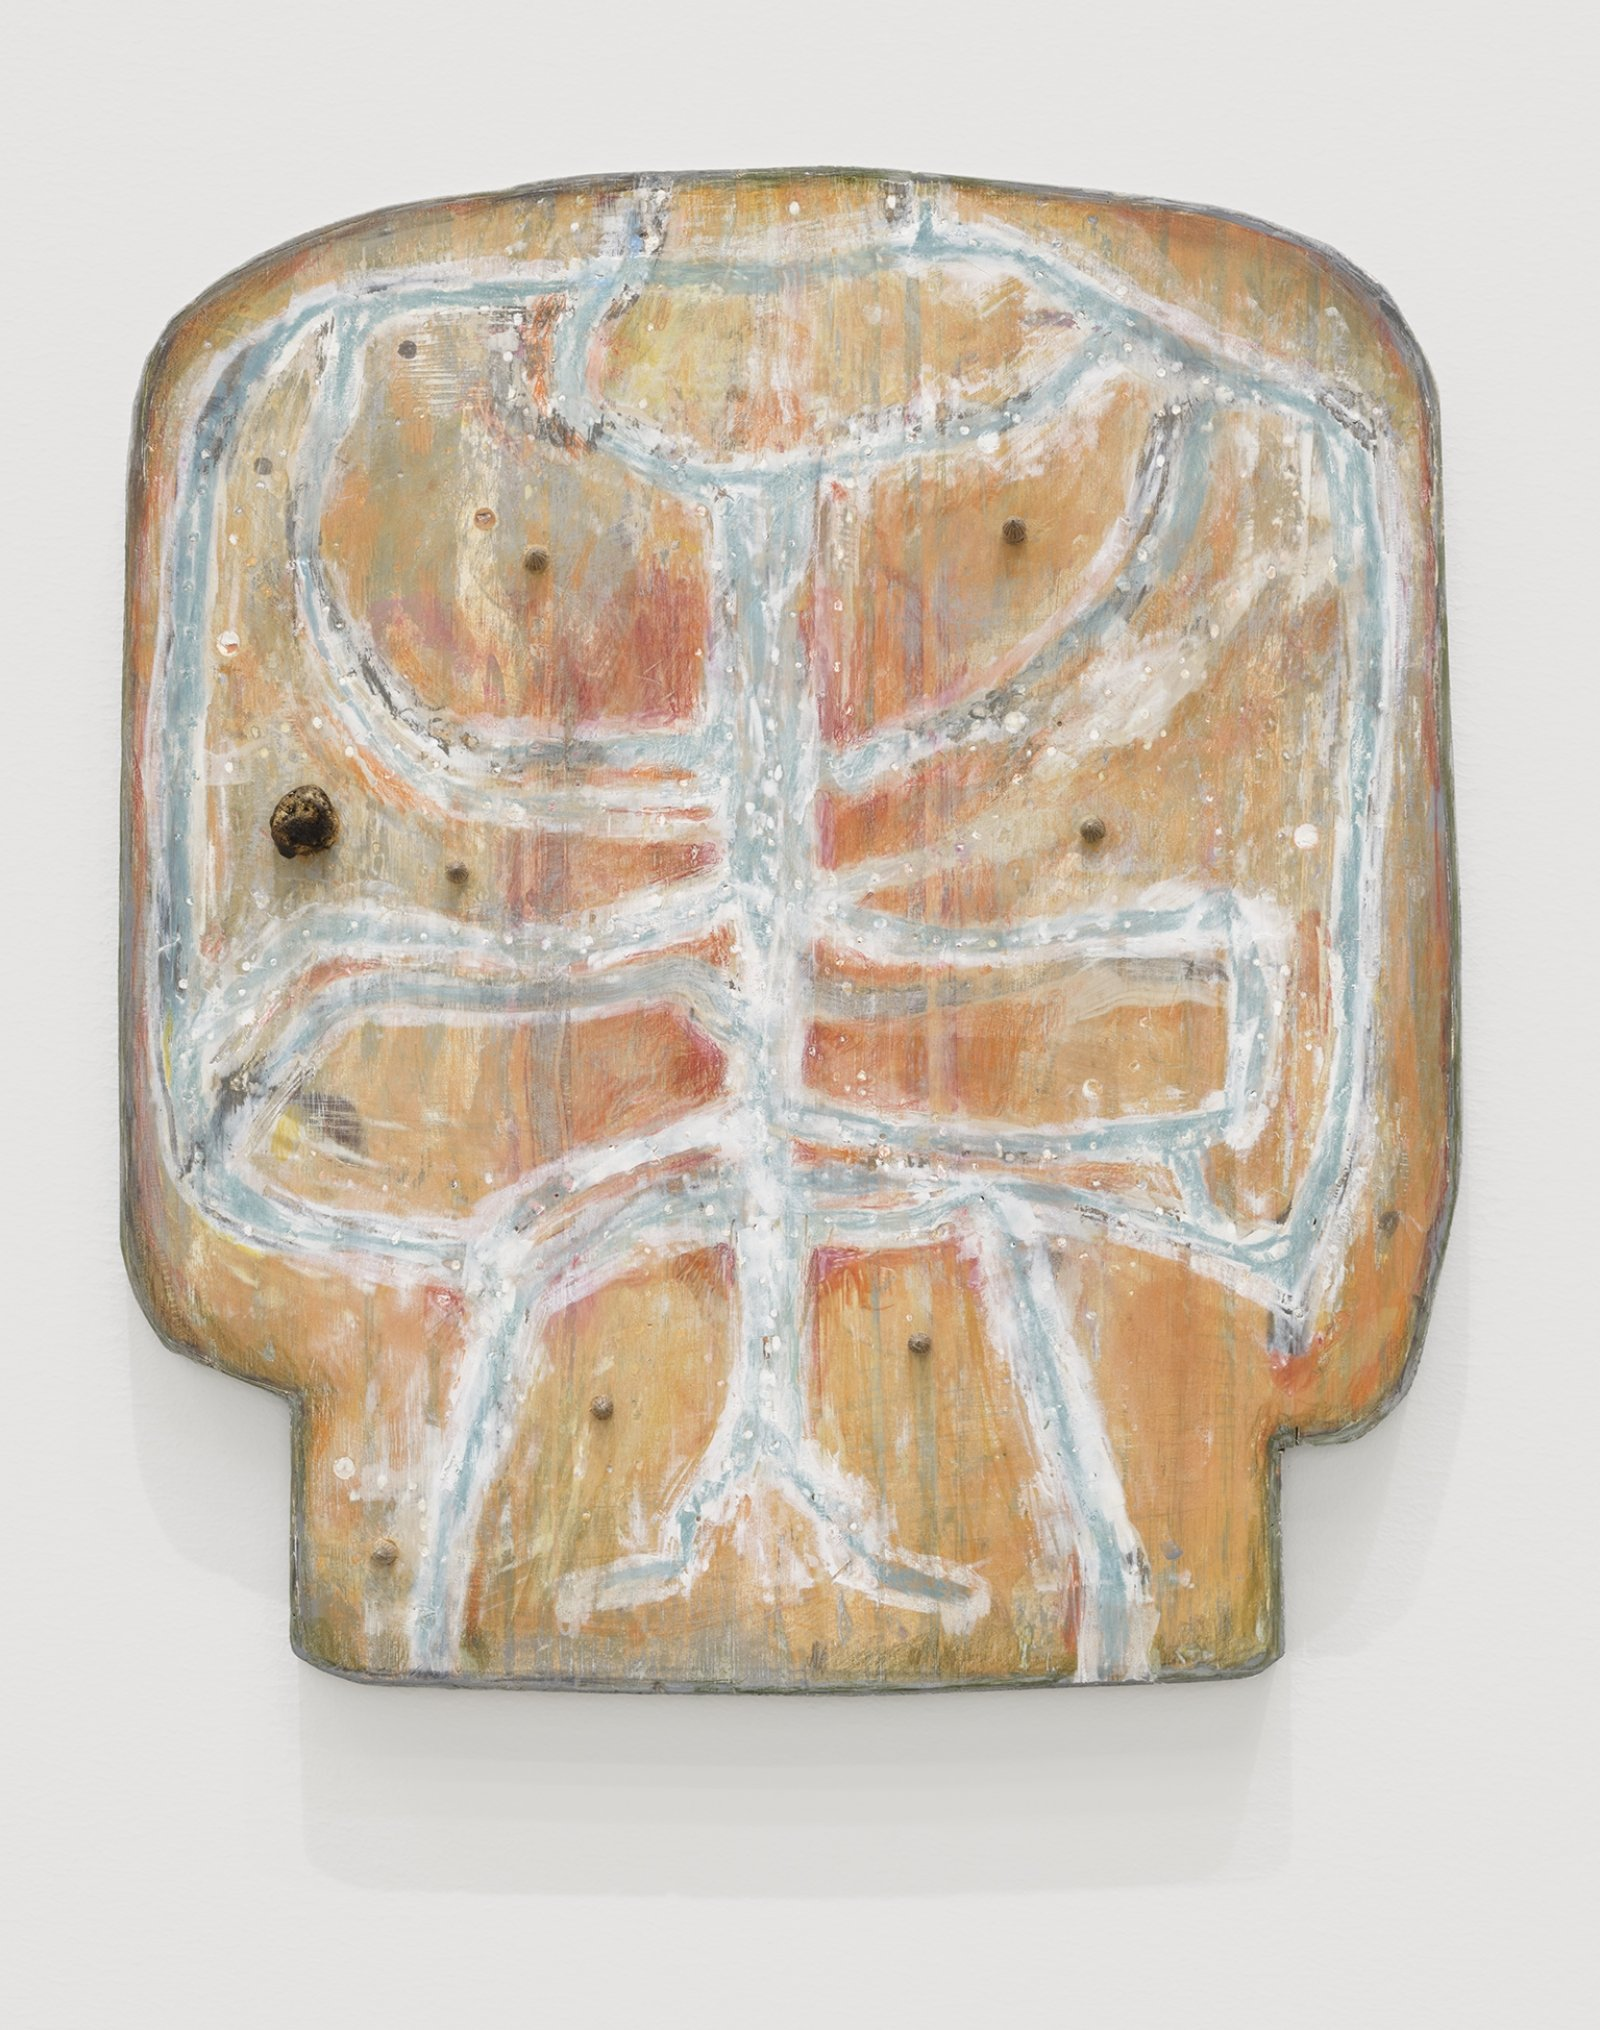 Ashes Withyman, One into Saturn, the other Jupiter, 2020, found wood, paint, wood filler, coloured pencil, Russian olive pits, osha root, 12 x 11 in. (31 x 28 cm) by Ashes Withyman